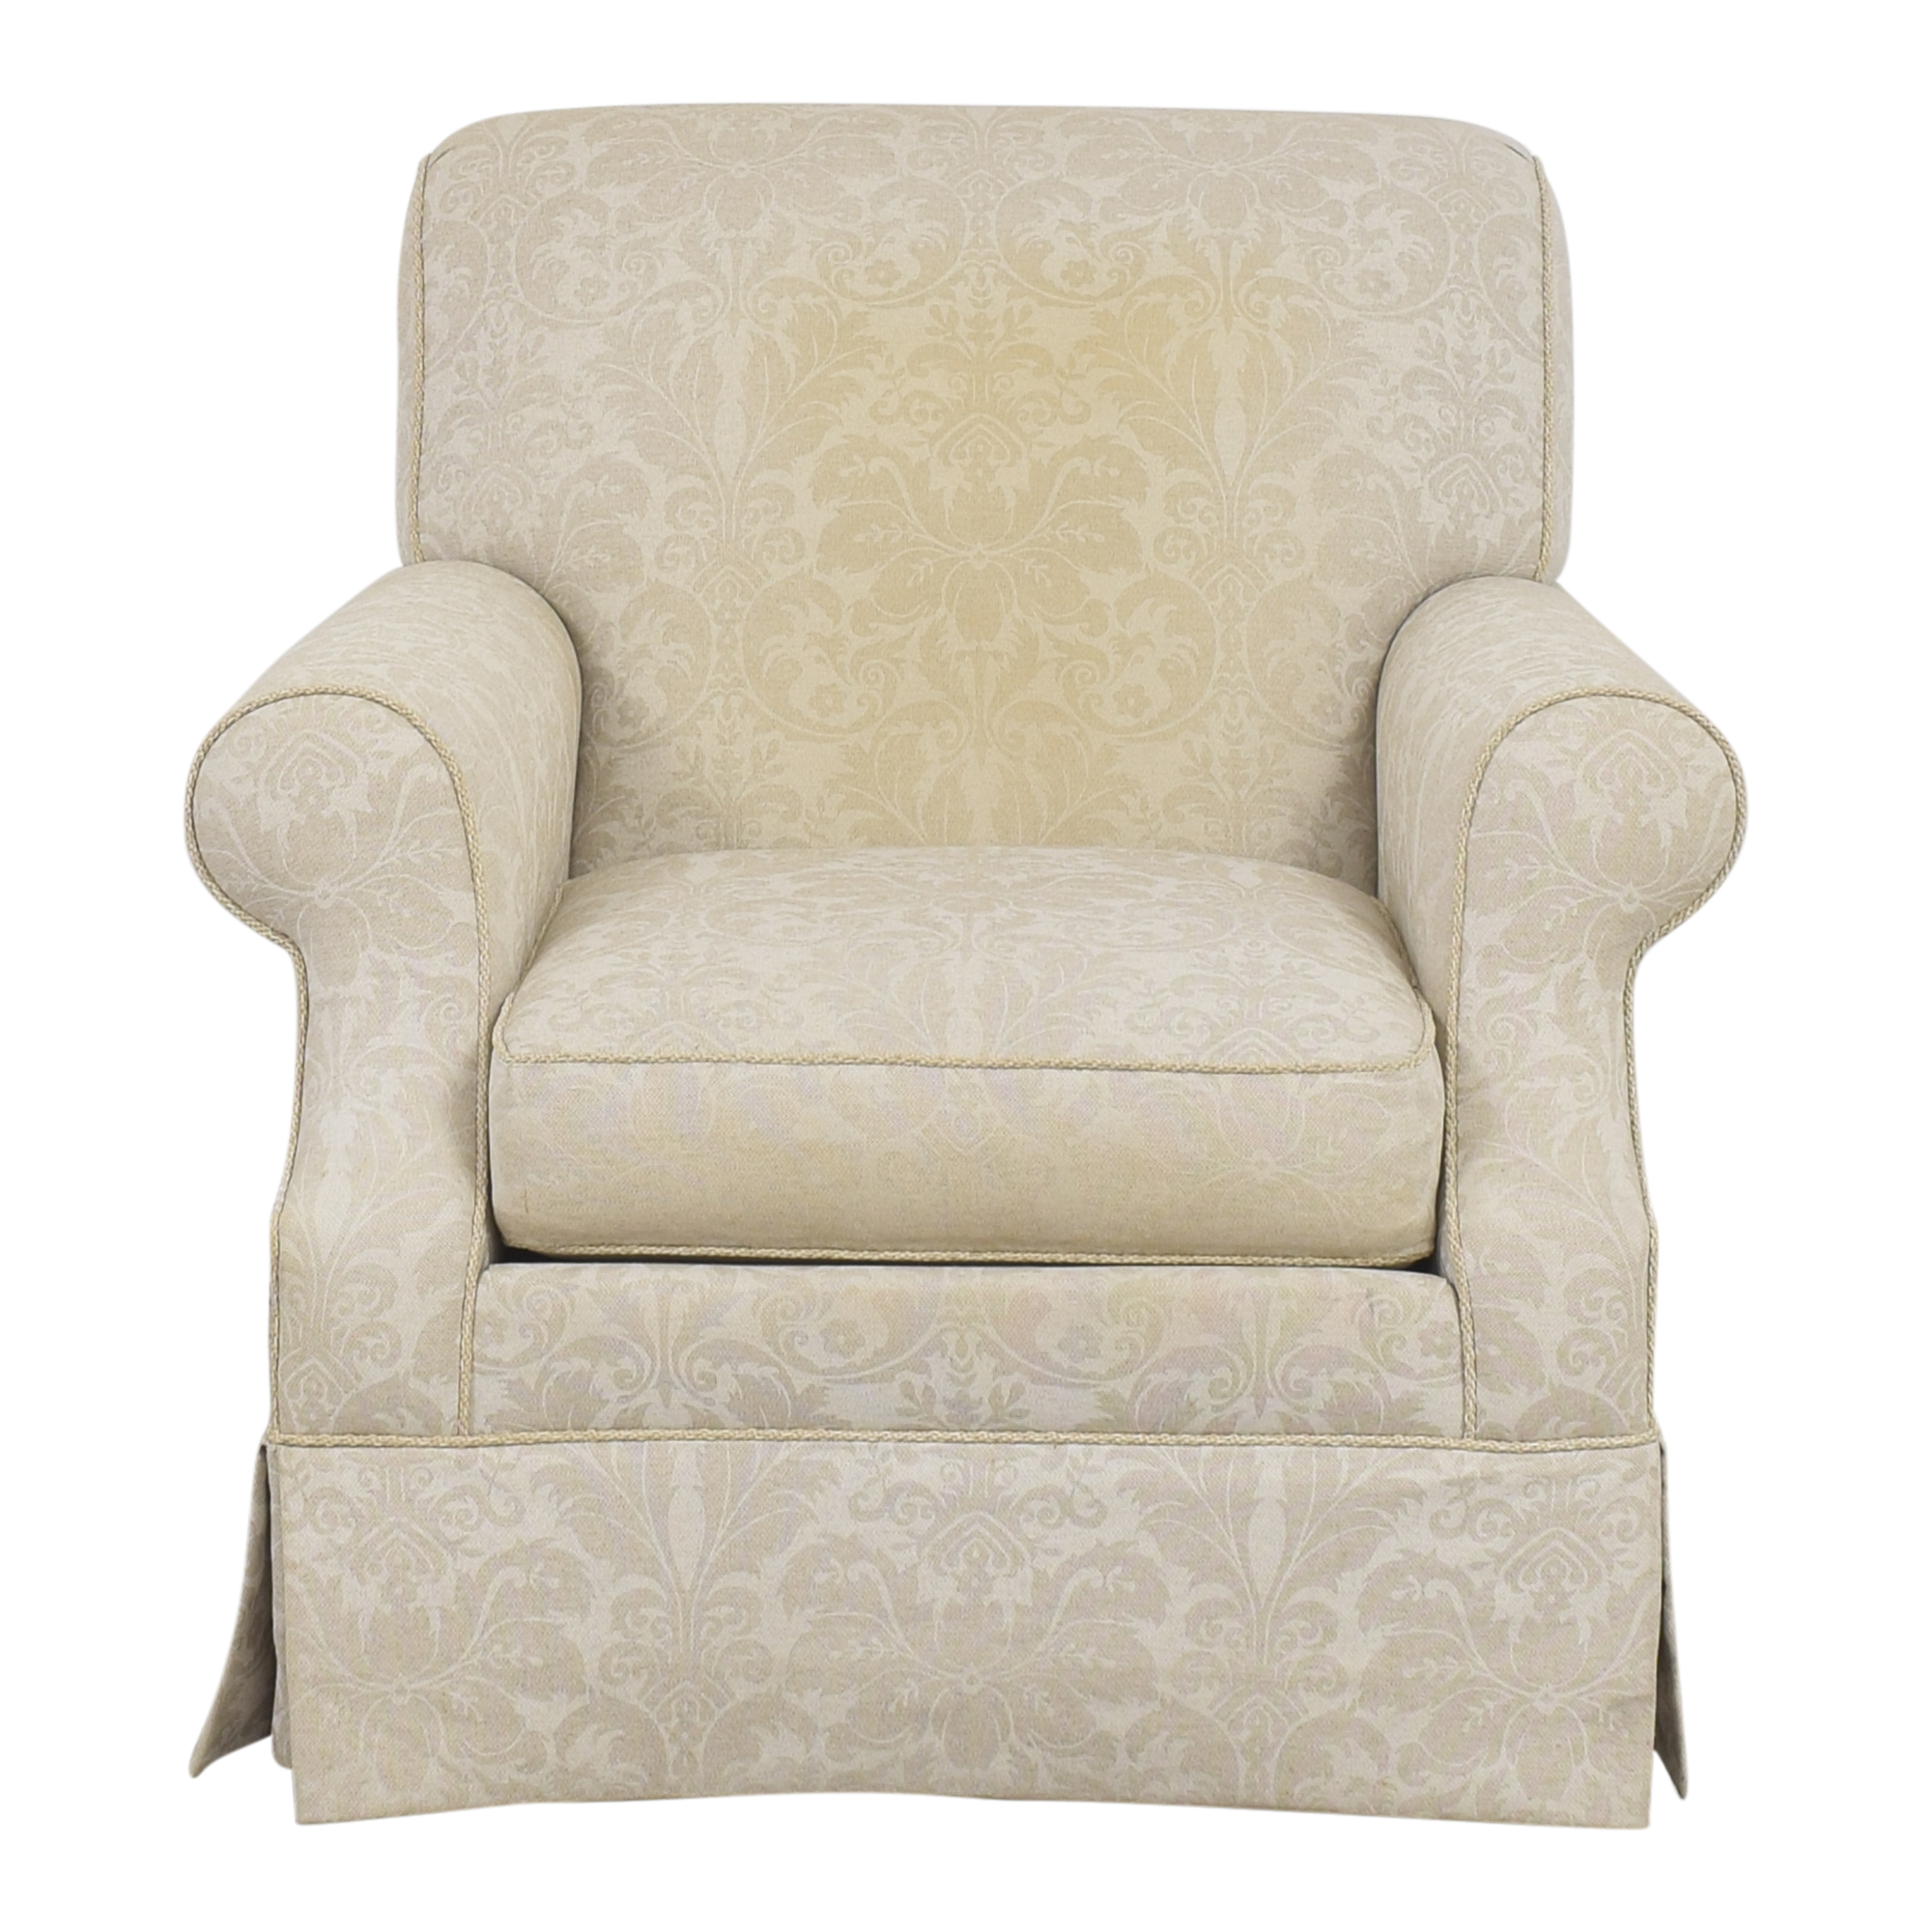 shop Ethan Allen Ethan Allen Damask Accent Chair online